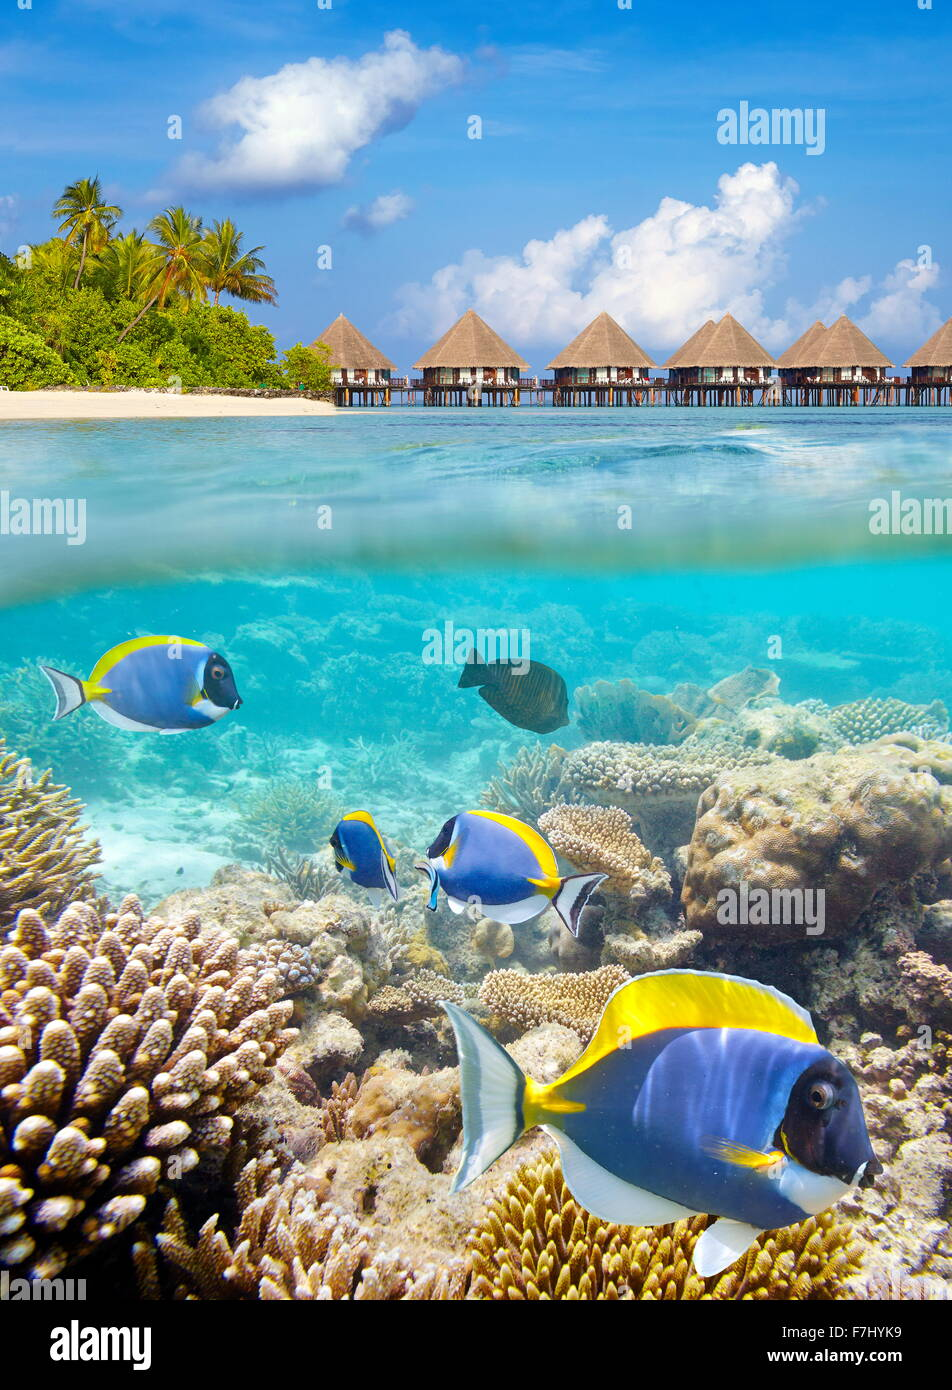 Underwater view at tropical fish and reef, Maldives Island, Ari Atoll - Stock Image